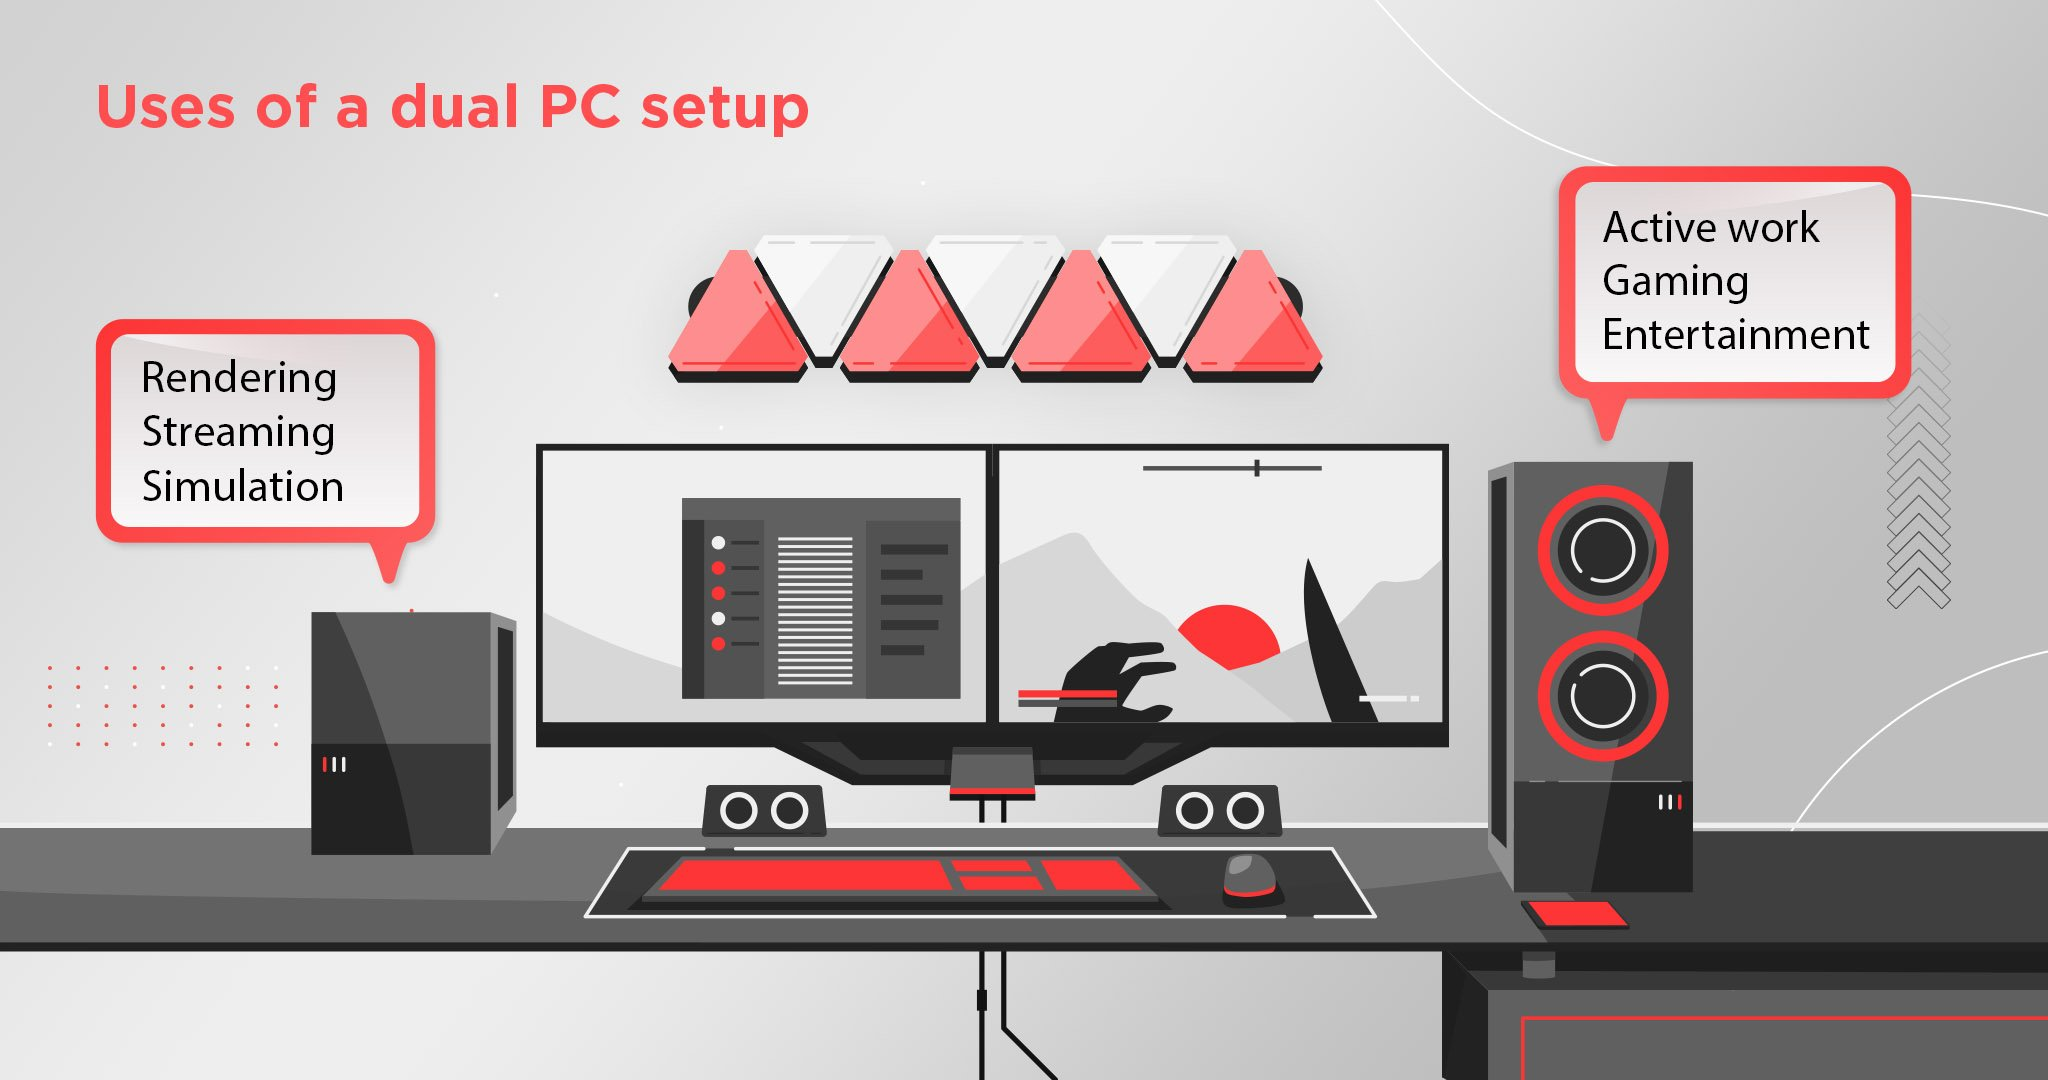 Uses Cases of a dual PC setup